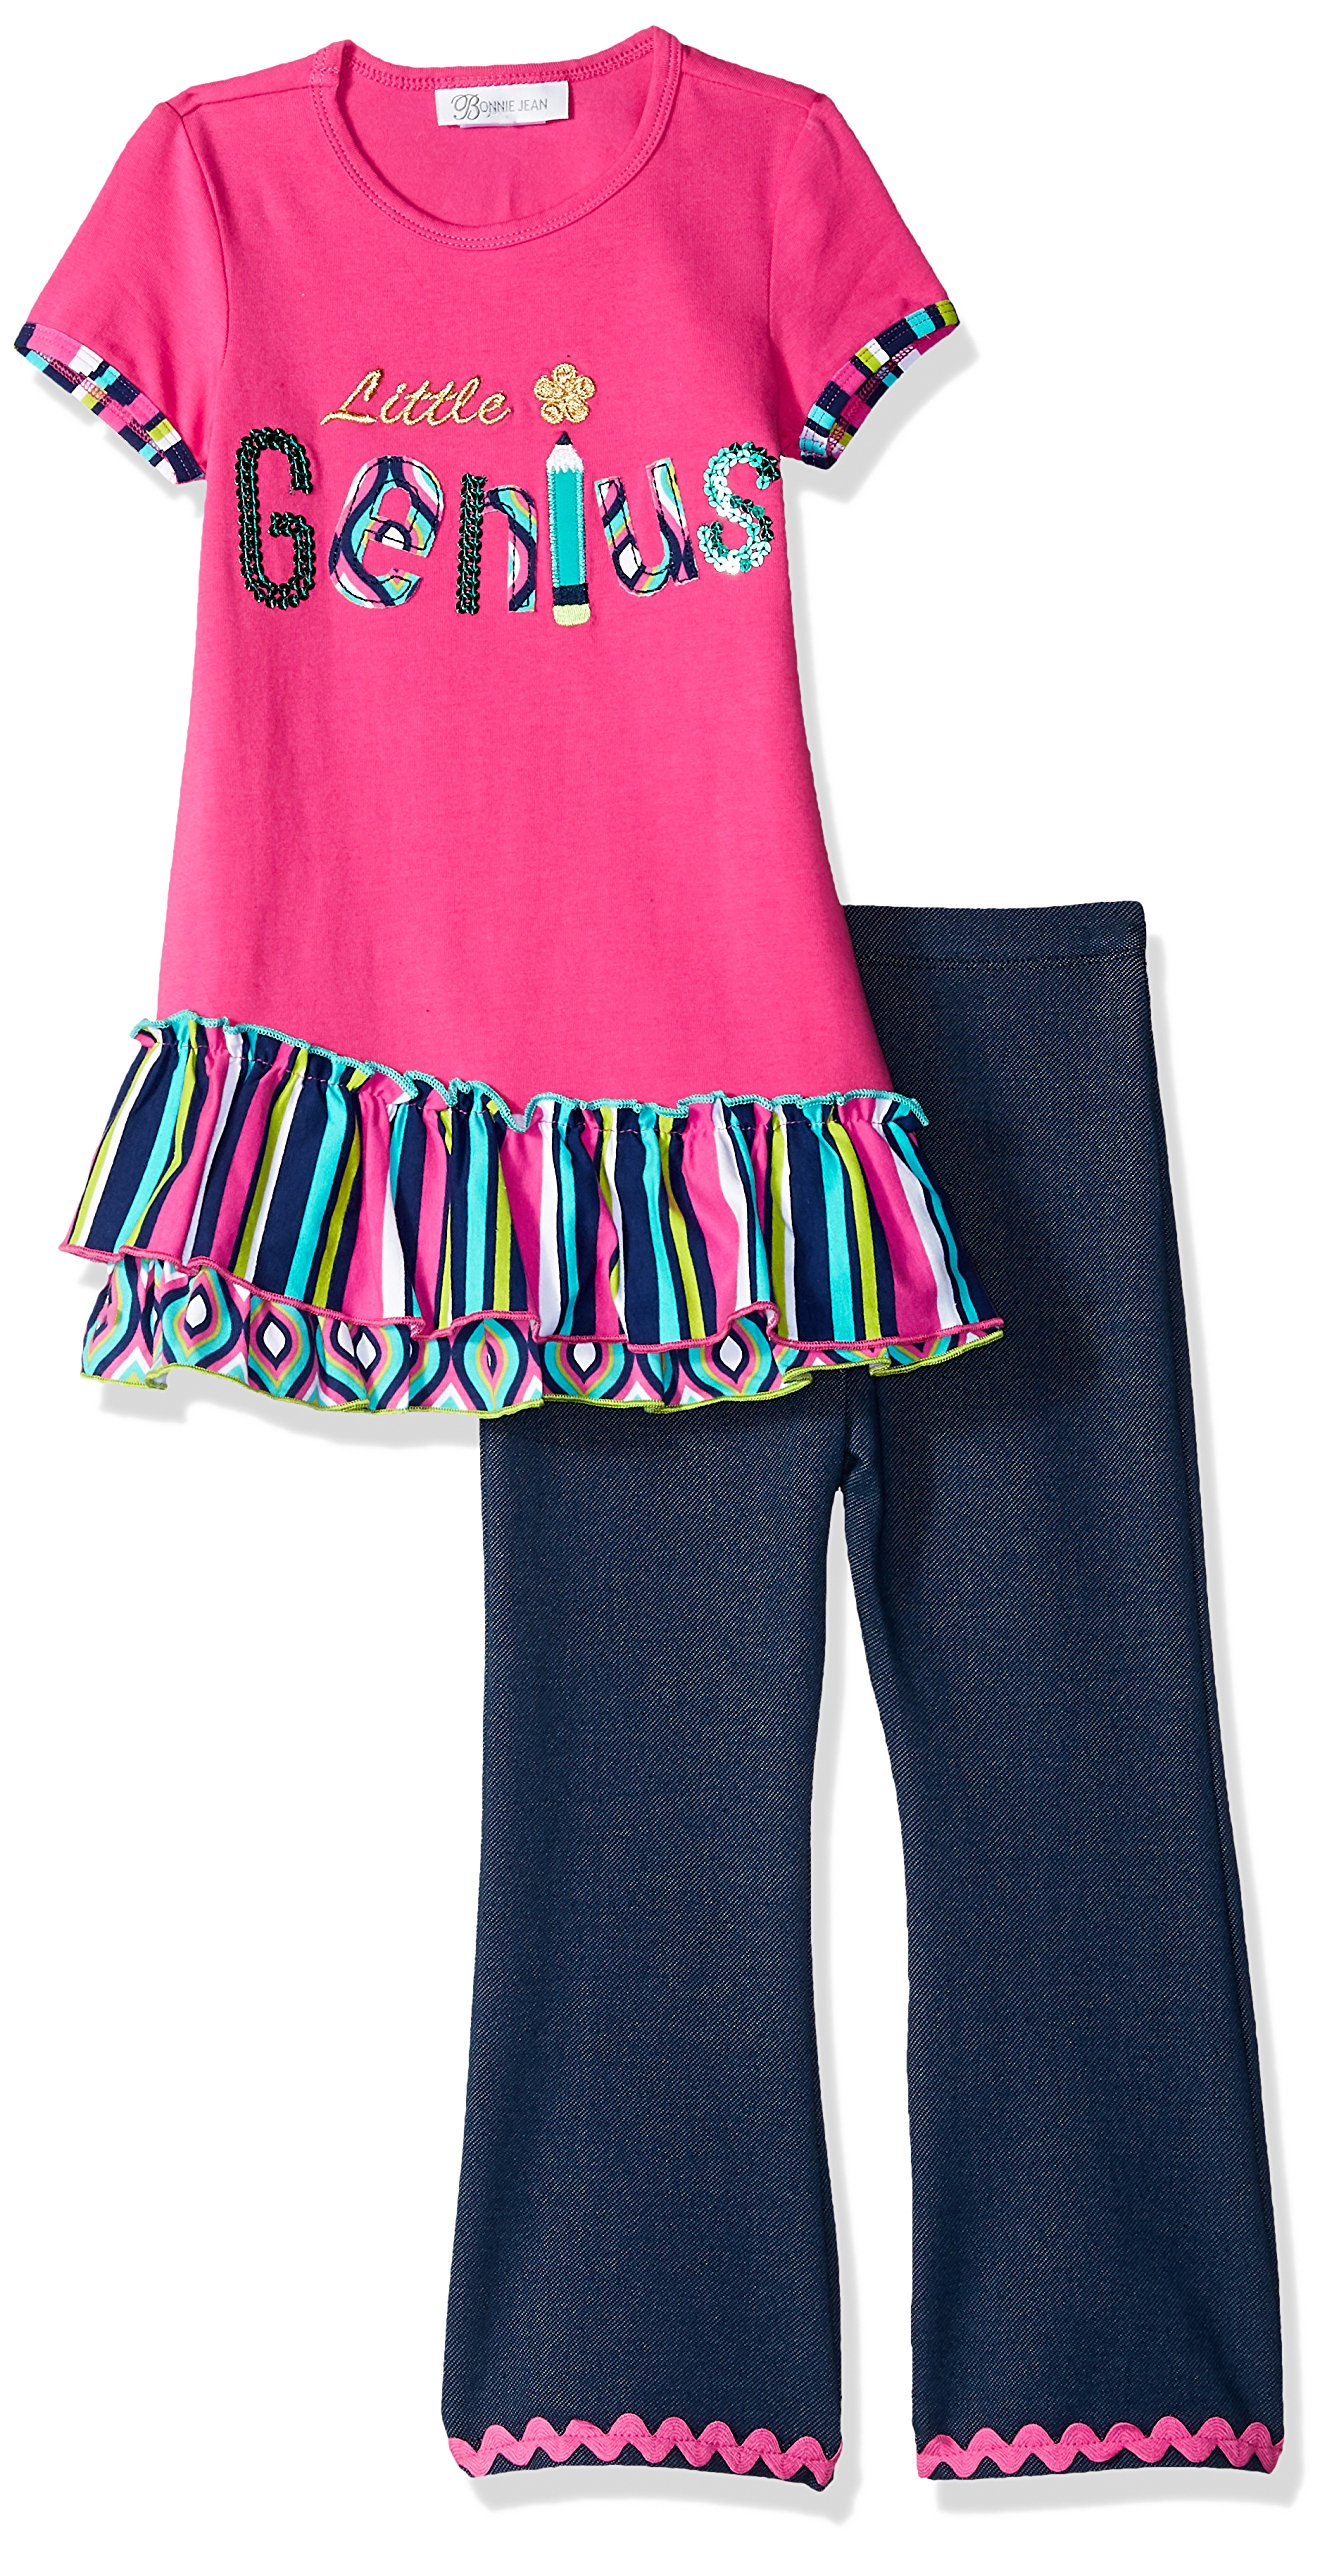 Bonnie Jean Toddler Girls' Holiday Dress and Legging Set, Little Genius, 4T